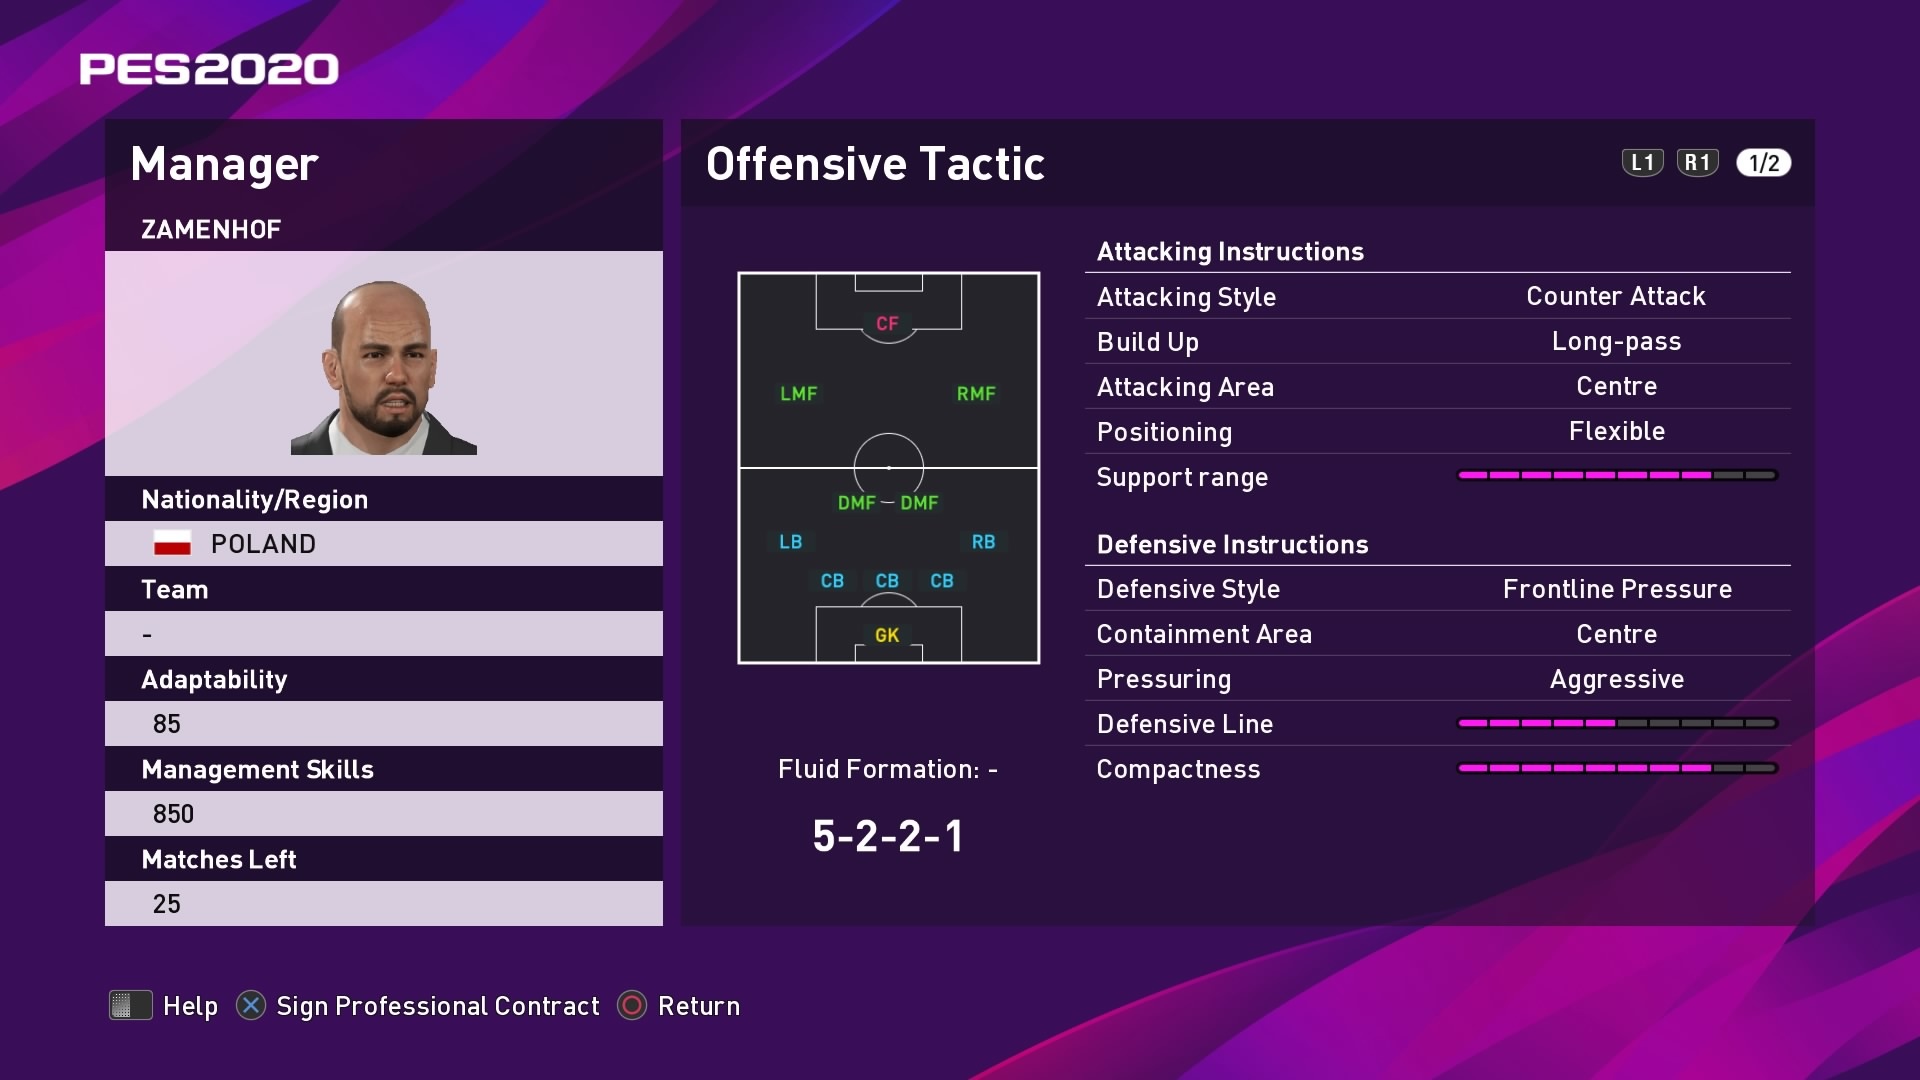 Zamenhof Offensive Tactic in PES 2020 myClub